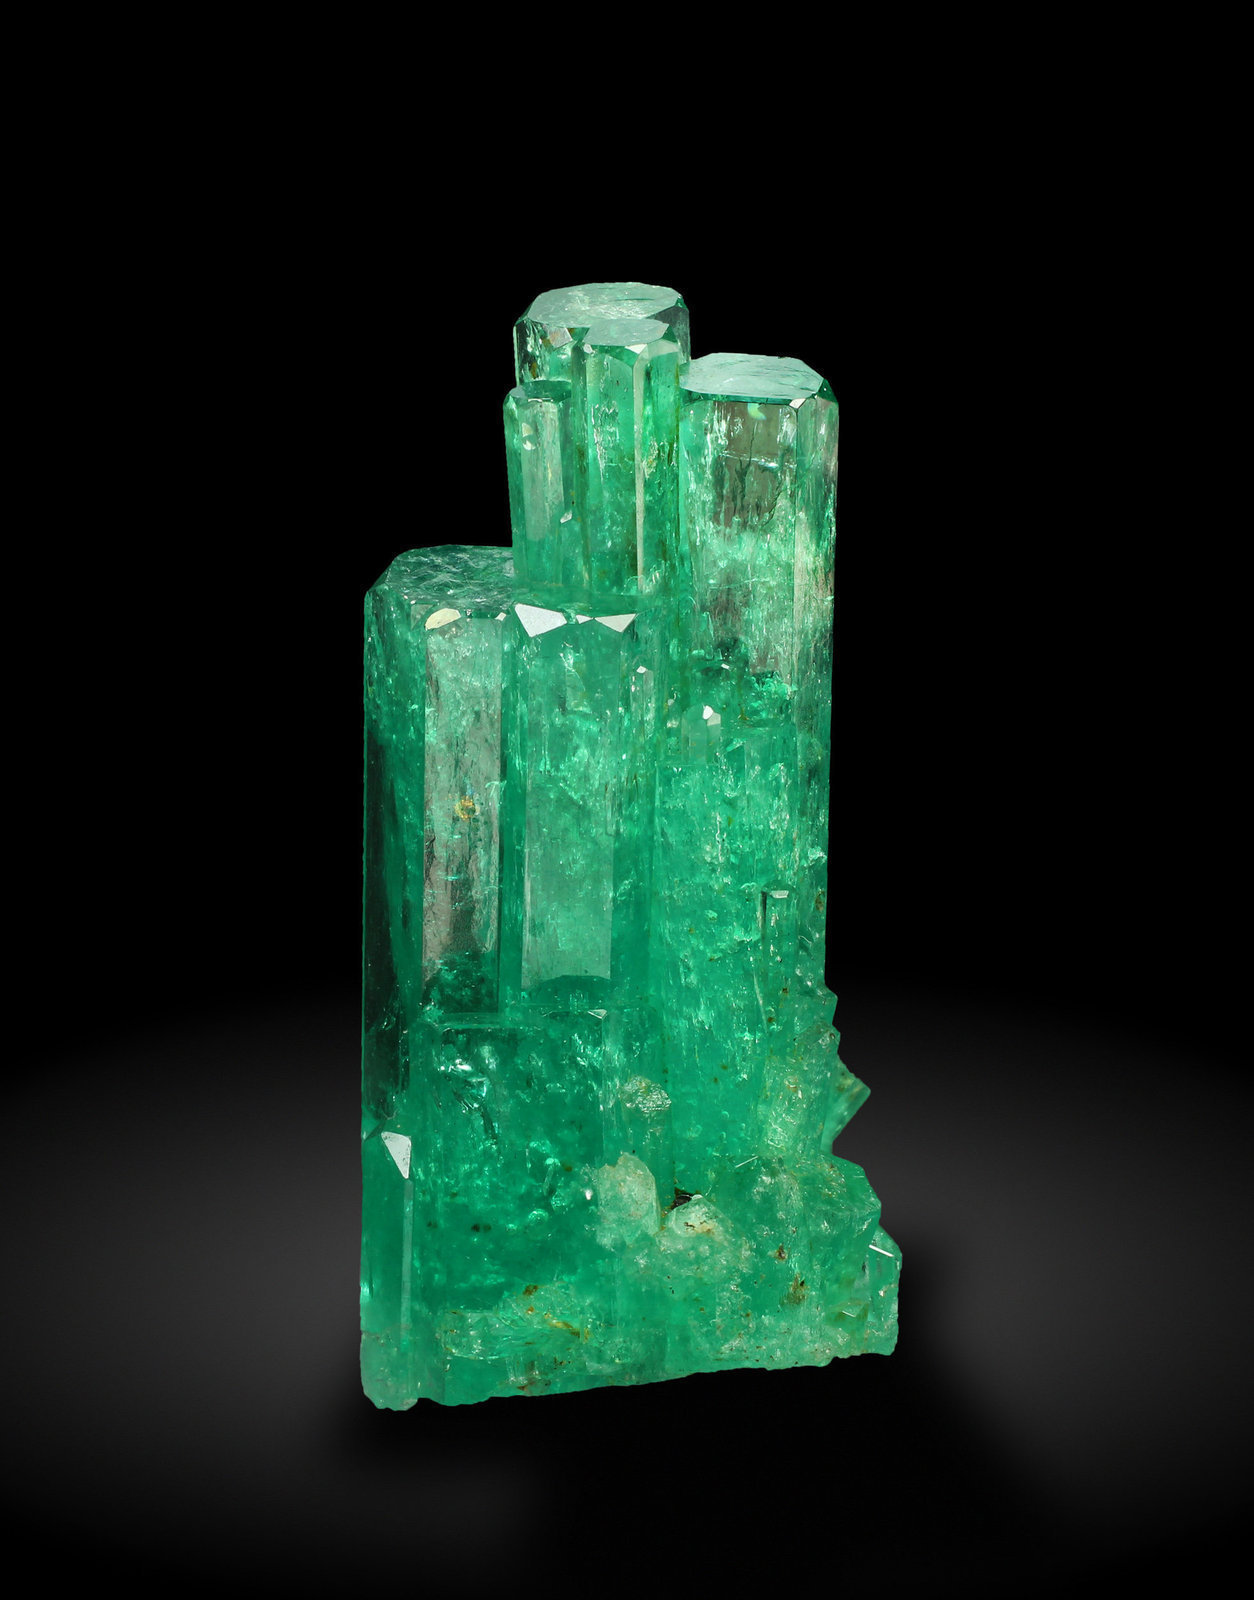 specimens/s_imagesAG1/Beryl_emerald-TF88AG1_7607_f.jpg